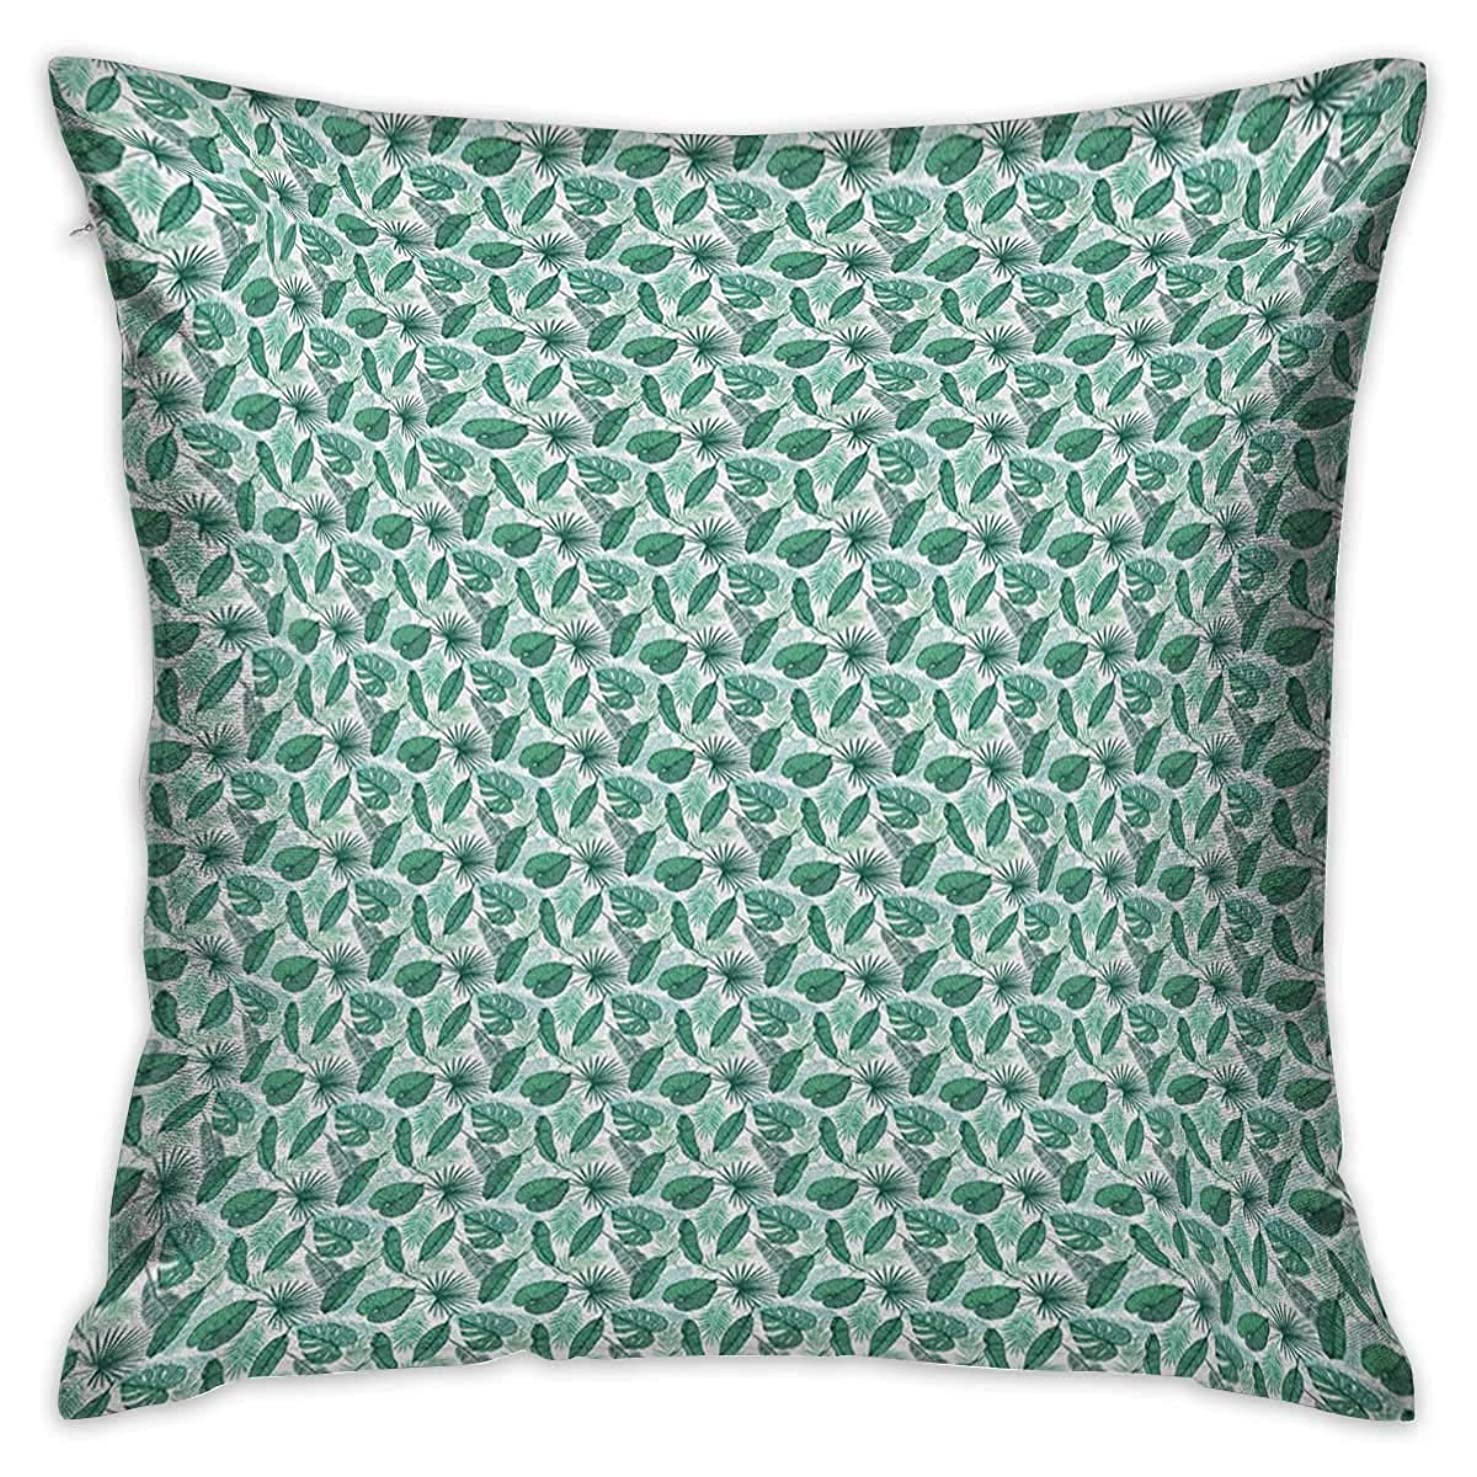 Banana Leaf Square Custom Pillowcase Monstera Areca and Fan Palm Leaves in Green Artistic Natural Pattern Jade Green White Cushion Cases Pillowcases for Sofa Bedroom Car W17.7 x L17.7